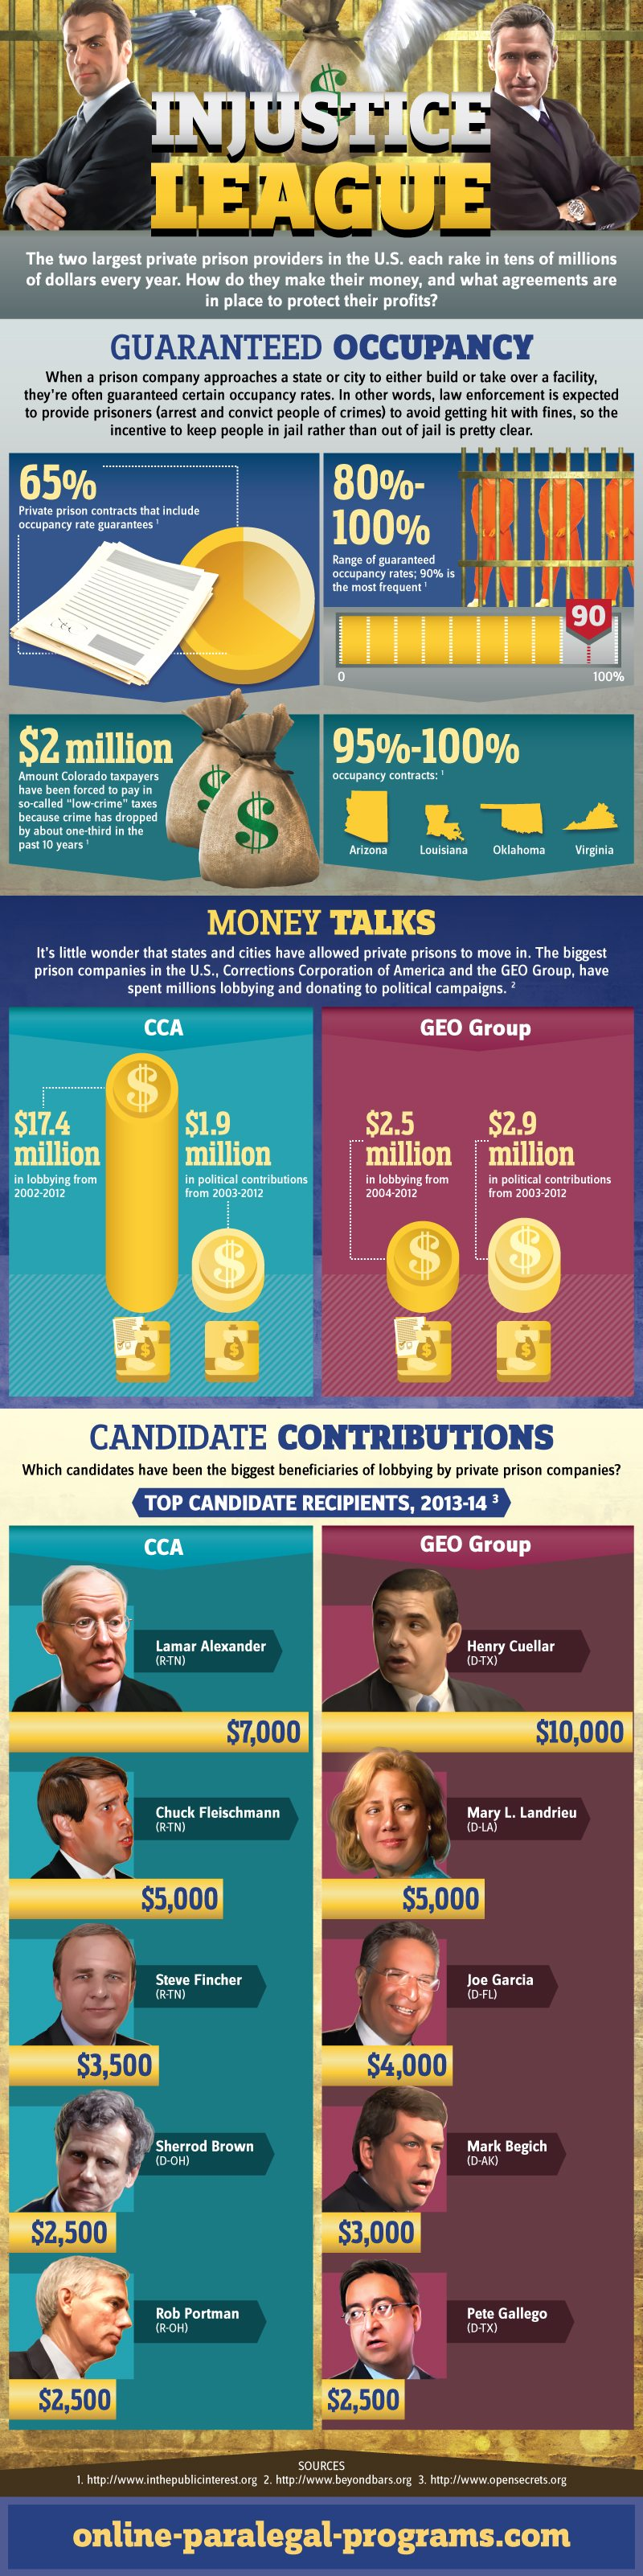 Gates Foundation Tries to Defend Investment in Private Prisons/Prison Privatization Infographic